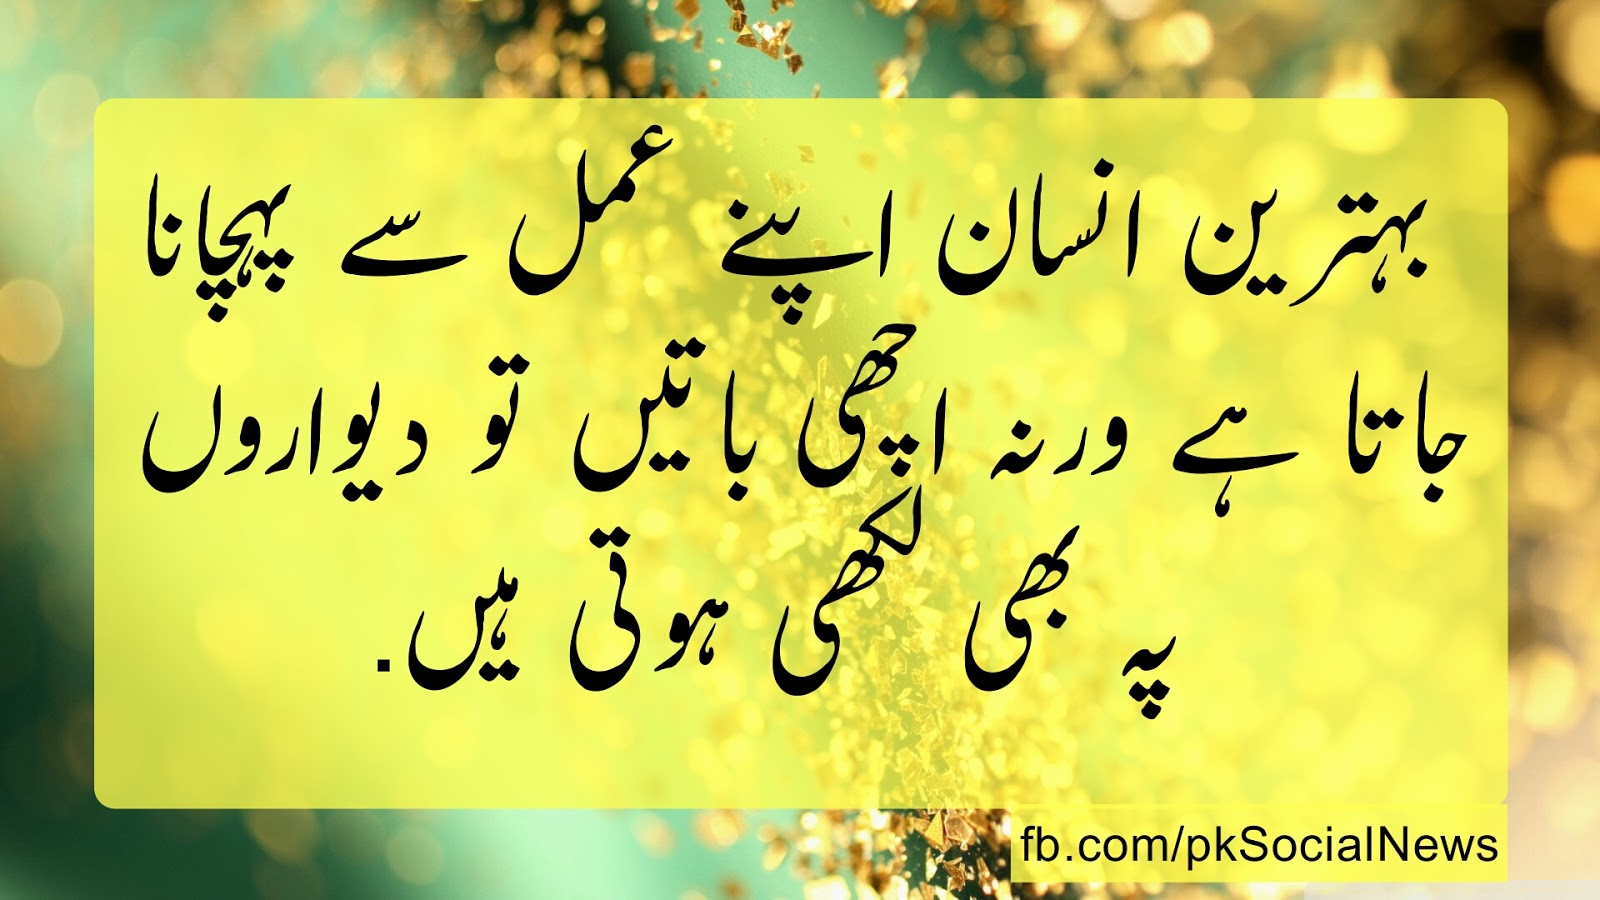 24 urdu sayings urdu love quotes urdu funny quotes urdu sad quotes urdu